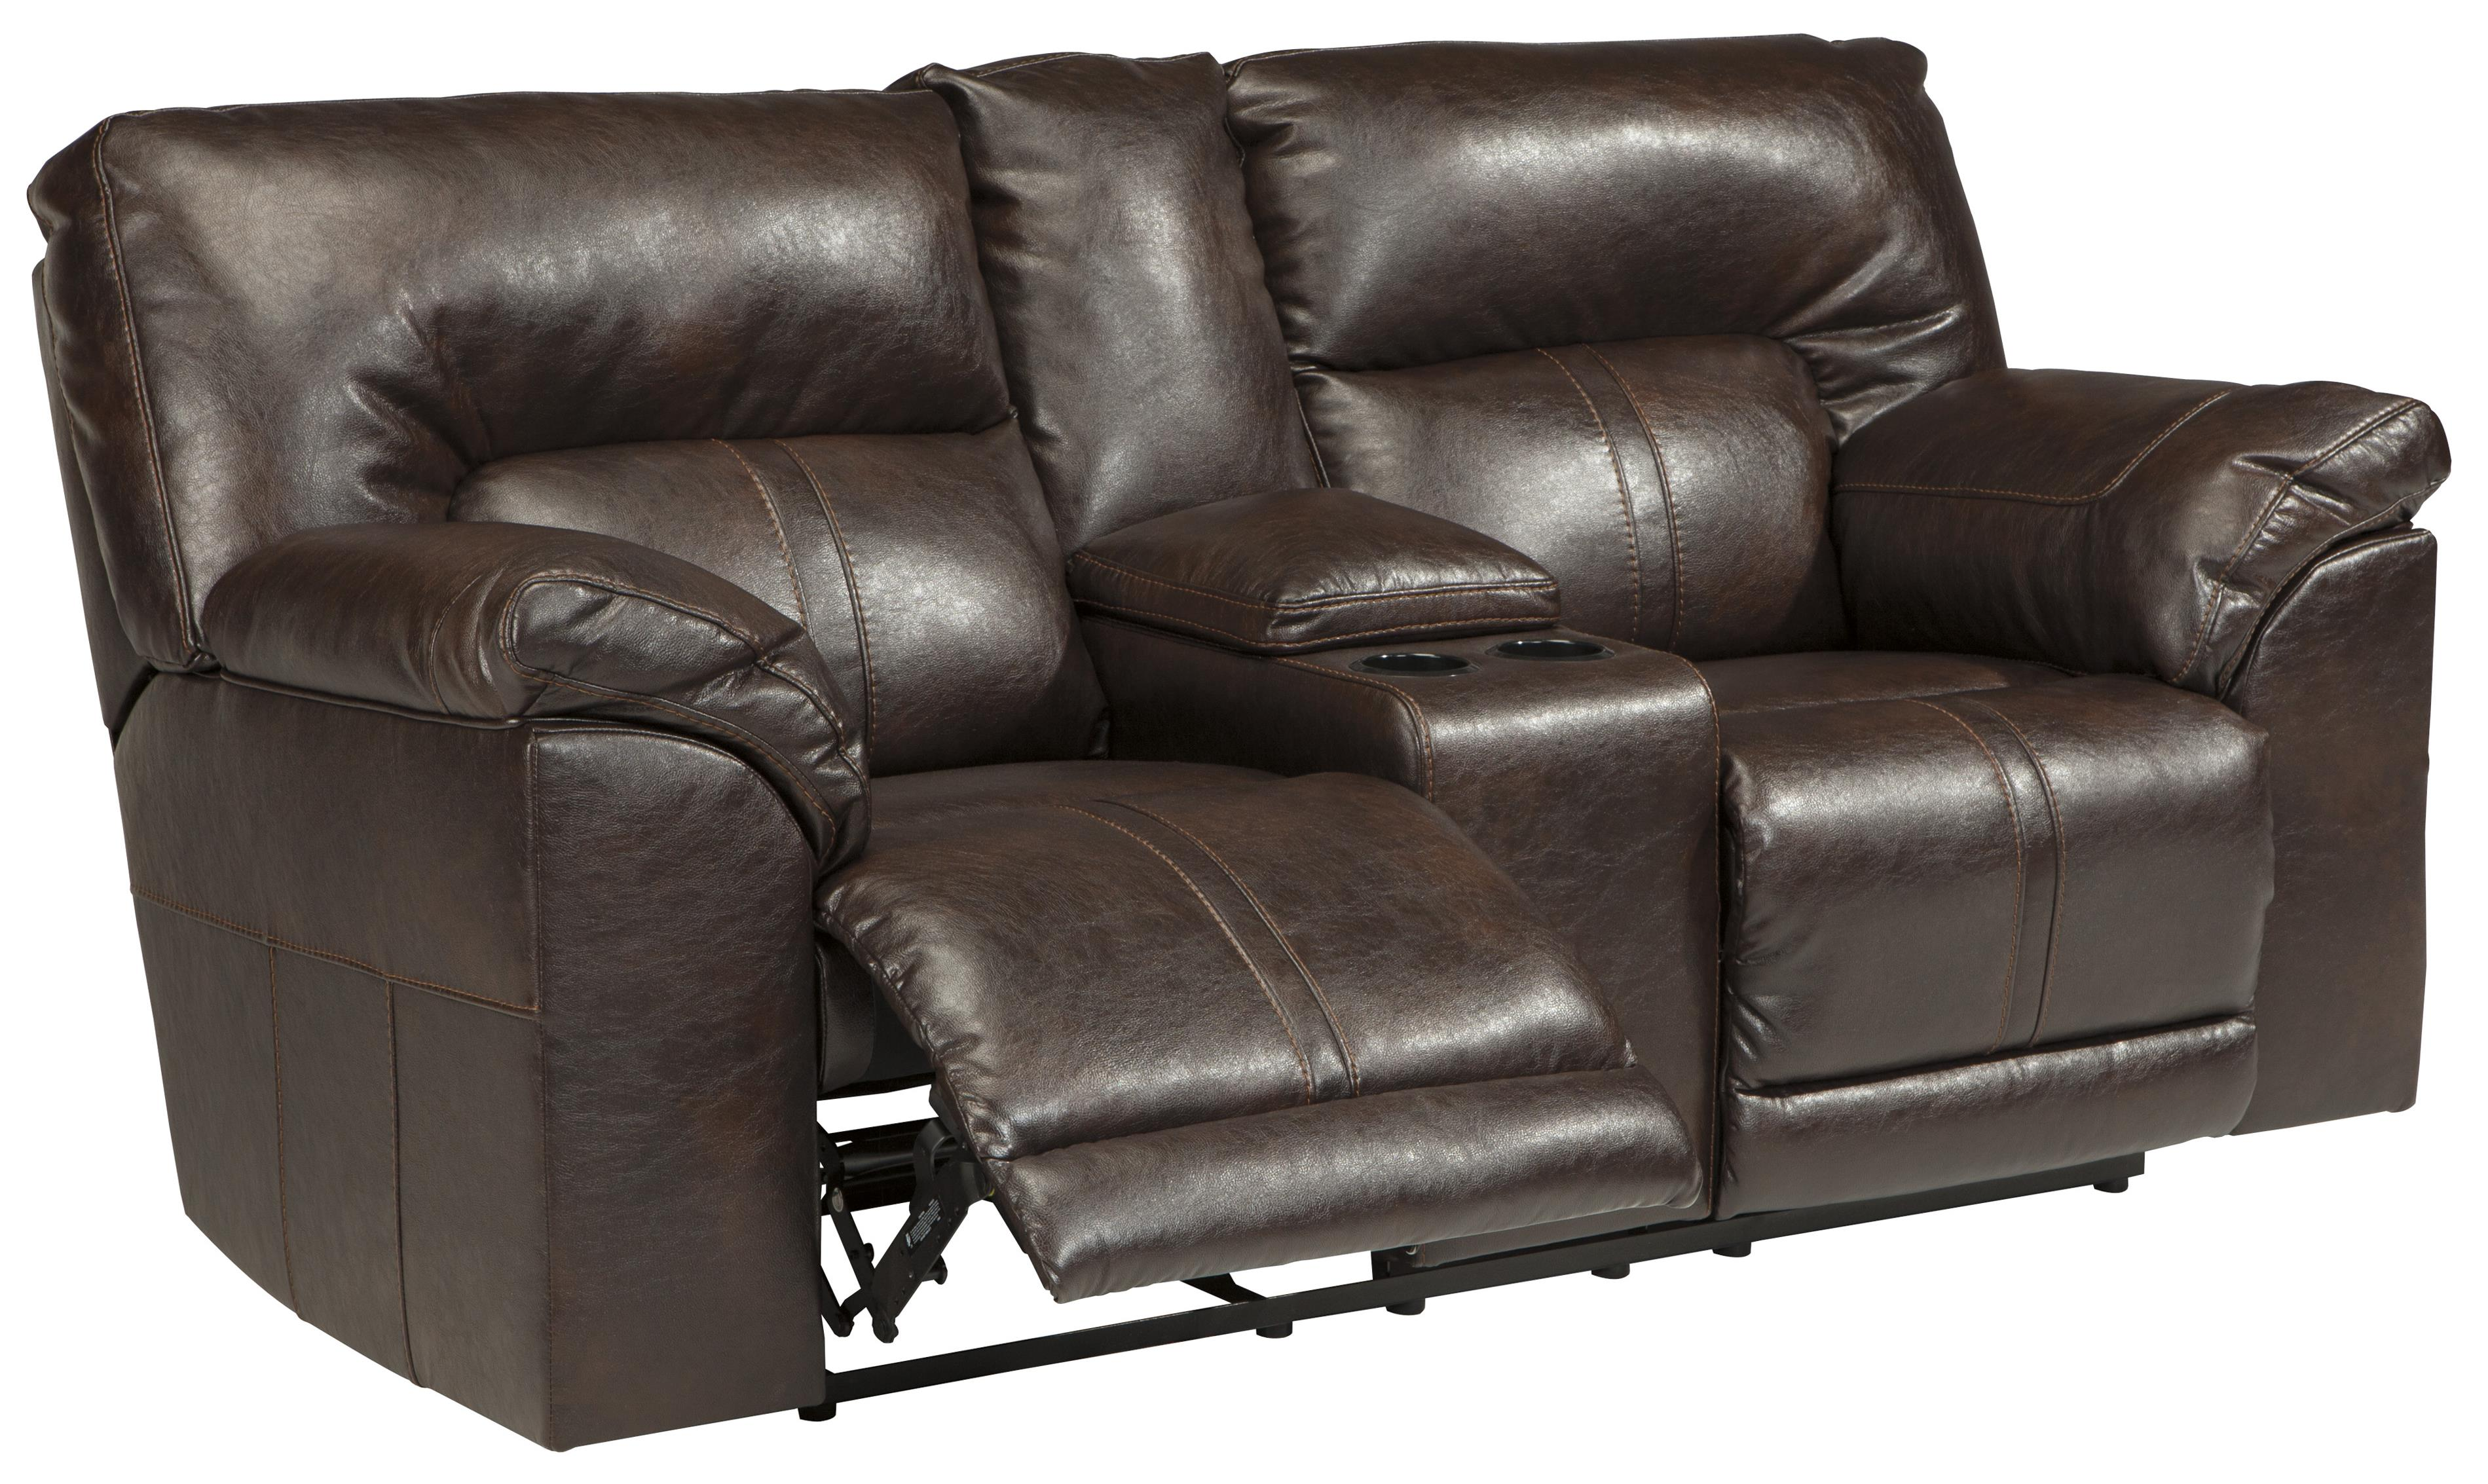 Double Reclining Loveseat W Console By Benchcraft Wolf And Gardiner Wolf Furniture